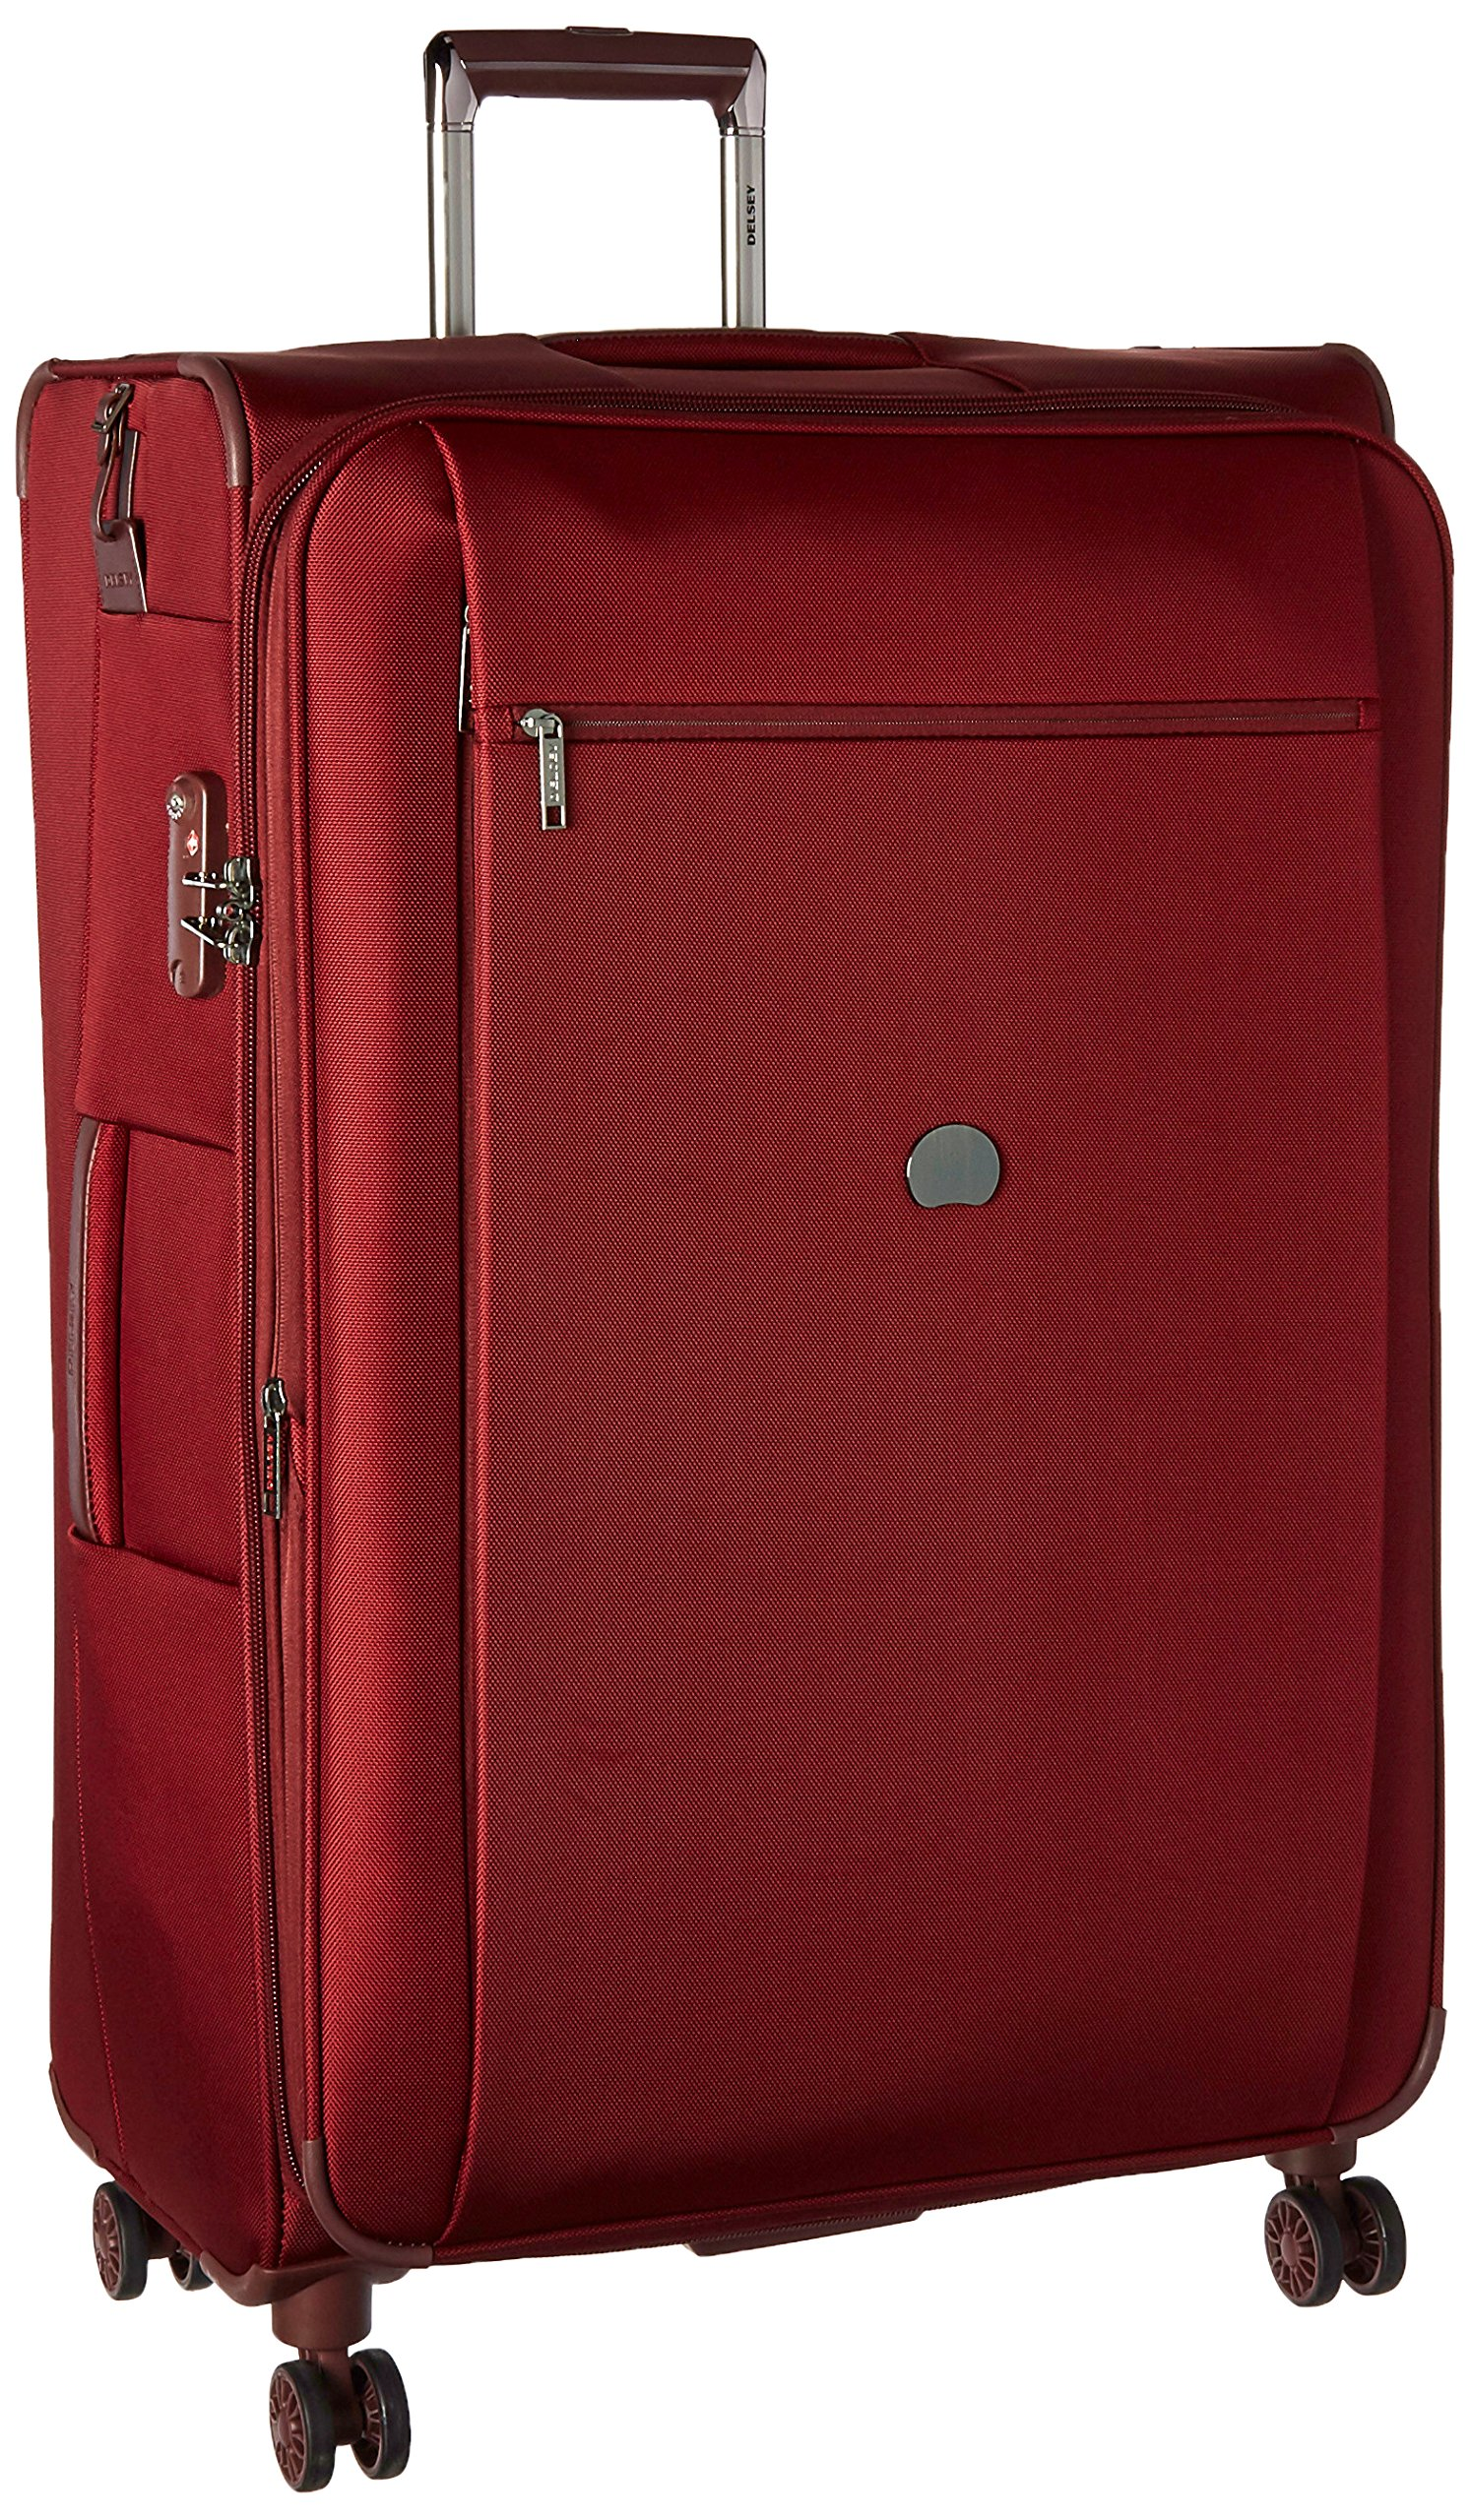 Delsey Luggage Montmartre+ 29 Inch Expandable Spinner Suitcase, Bordeaux